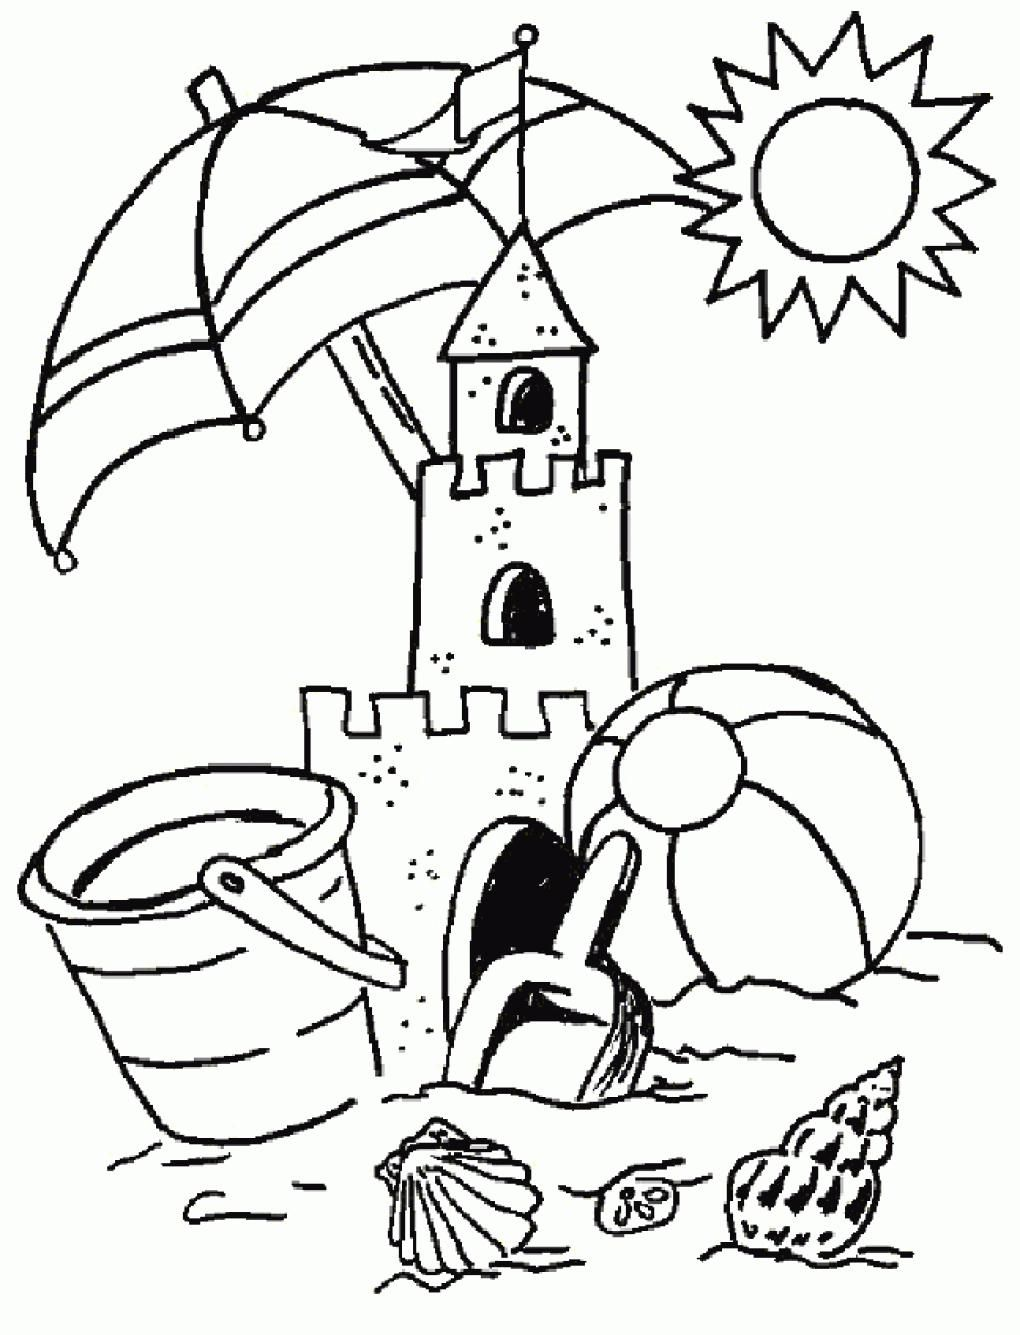 38 Free Printable Colouring Pages Summer Zomer Kleurplaten Kinderkleurplaten Kleurplaten Voor Kinderen